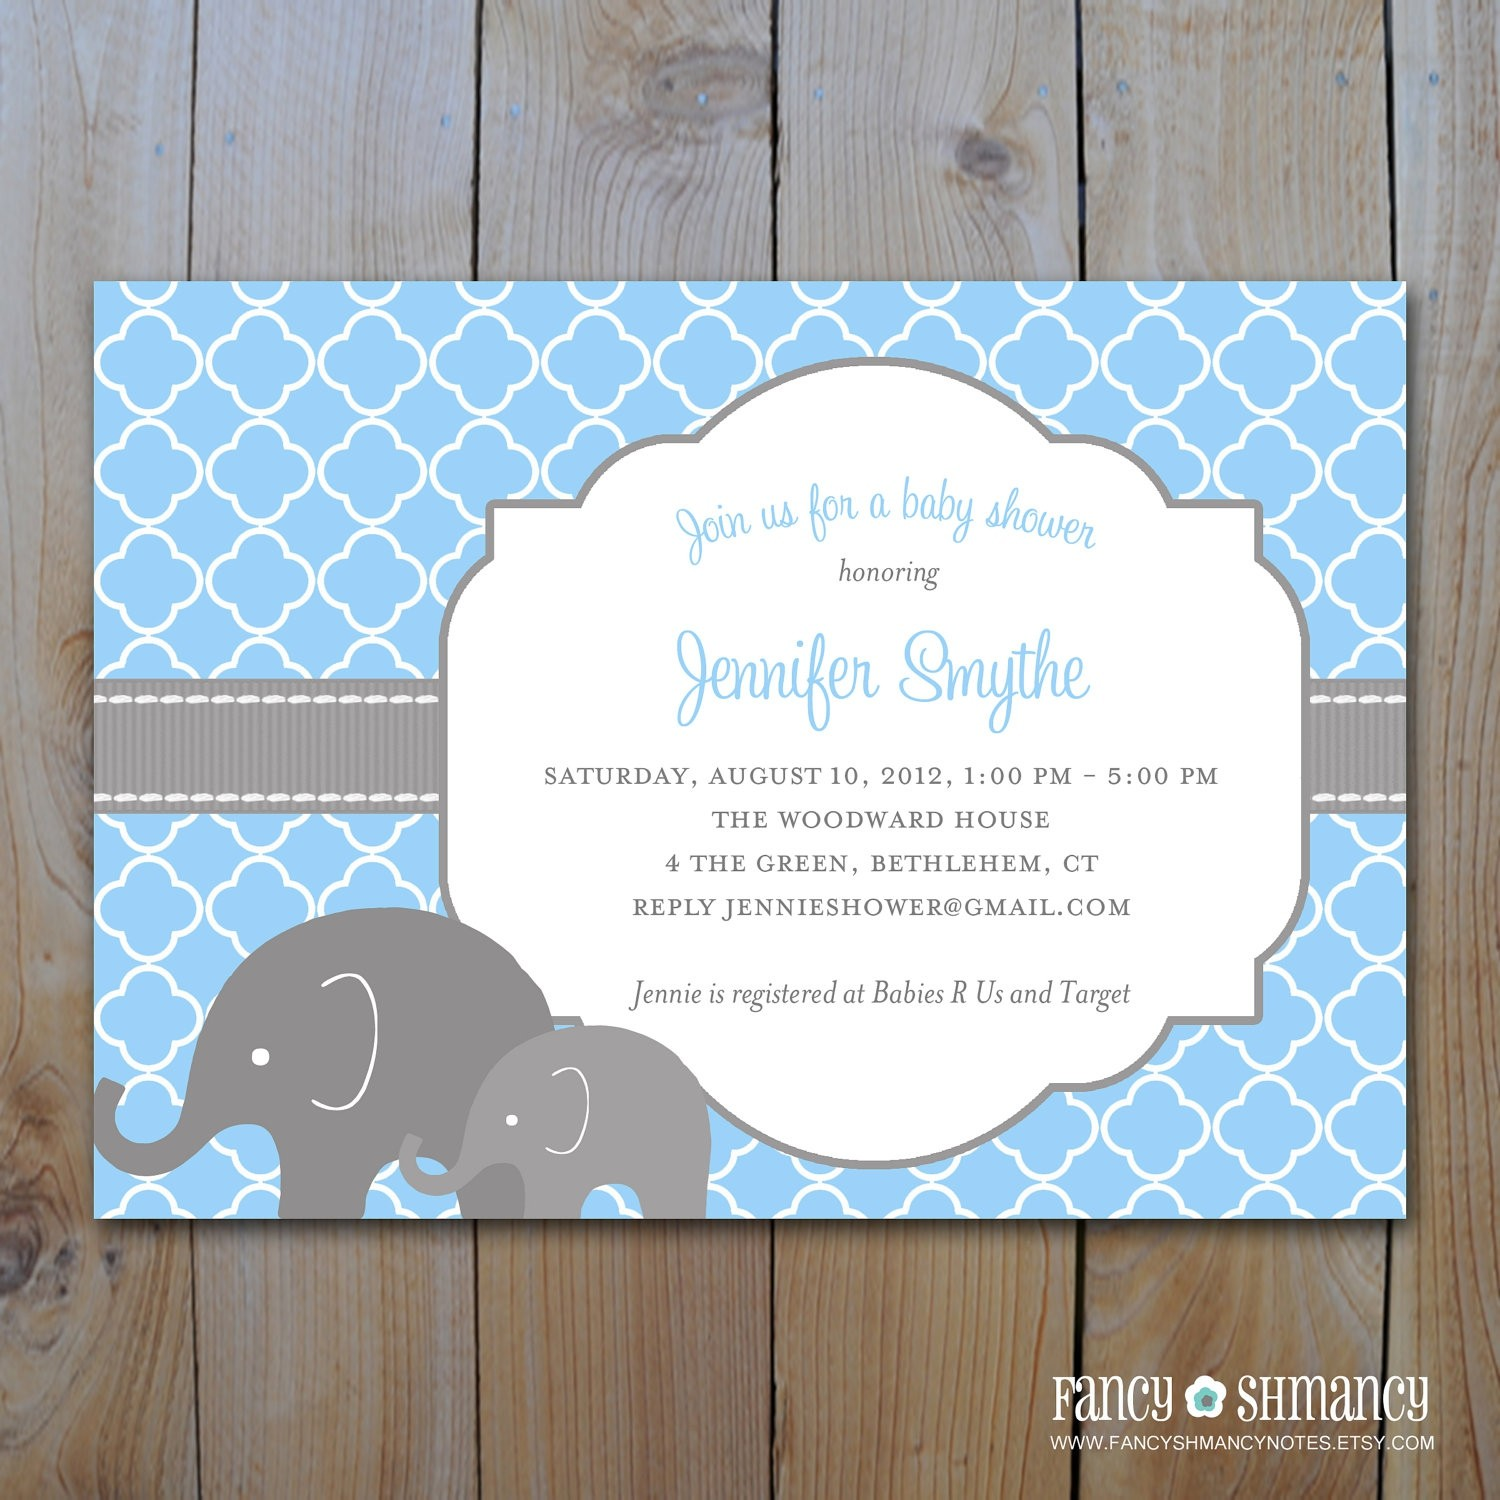 Full Size of Baby Shower:inspirational Elephant Baby Shower Invitations Photo Concepts Baby Shower Registry List With Baby Shower Crafts Plus Baby Shower Cards For Boy Together With Creative Baby Shower Gifts As Well As Baby Shower Items And Baby Shower Stores